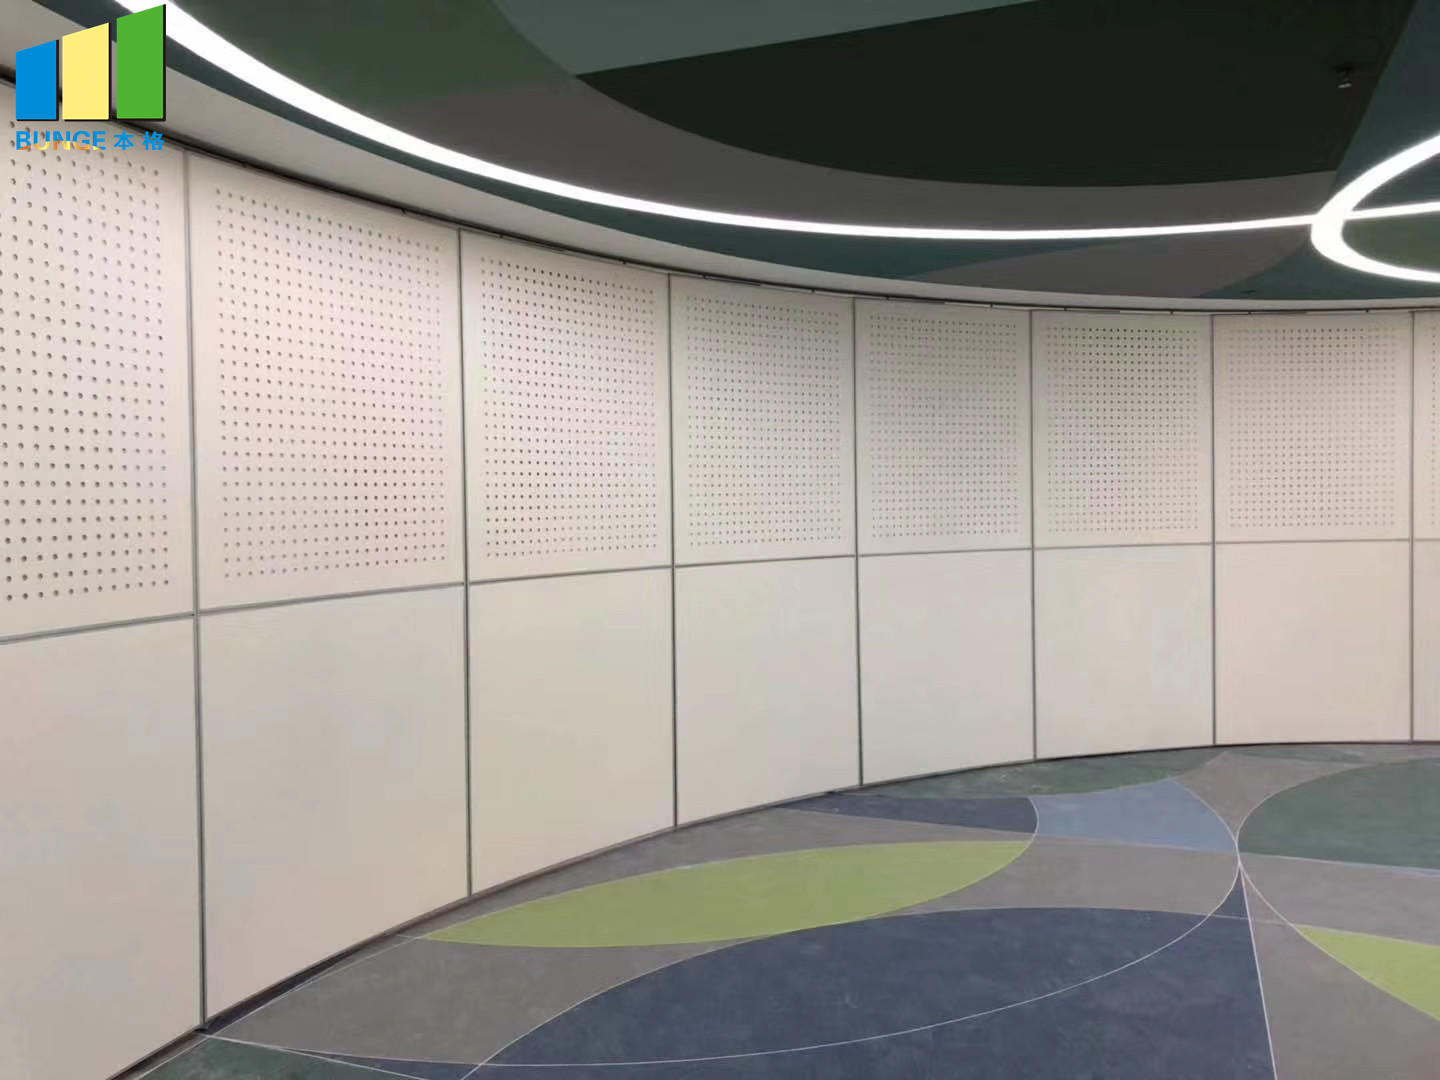 Bunge-Manufacturer Of Retractable Wall Interior Mobile Operable Sliding Sound-1